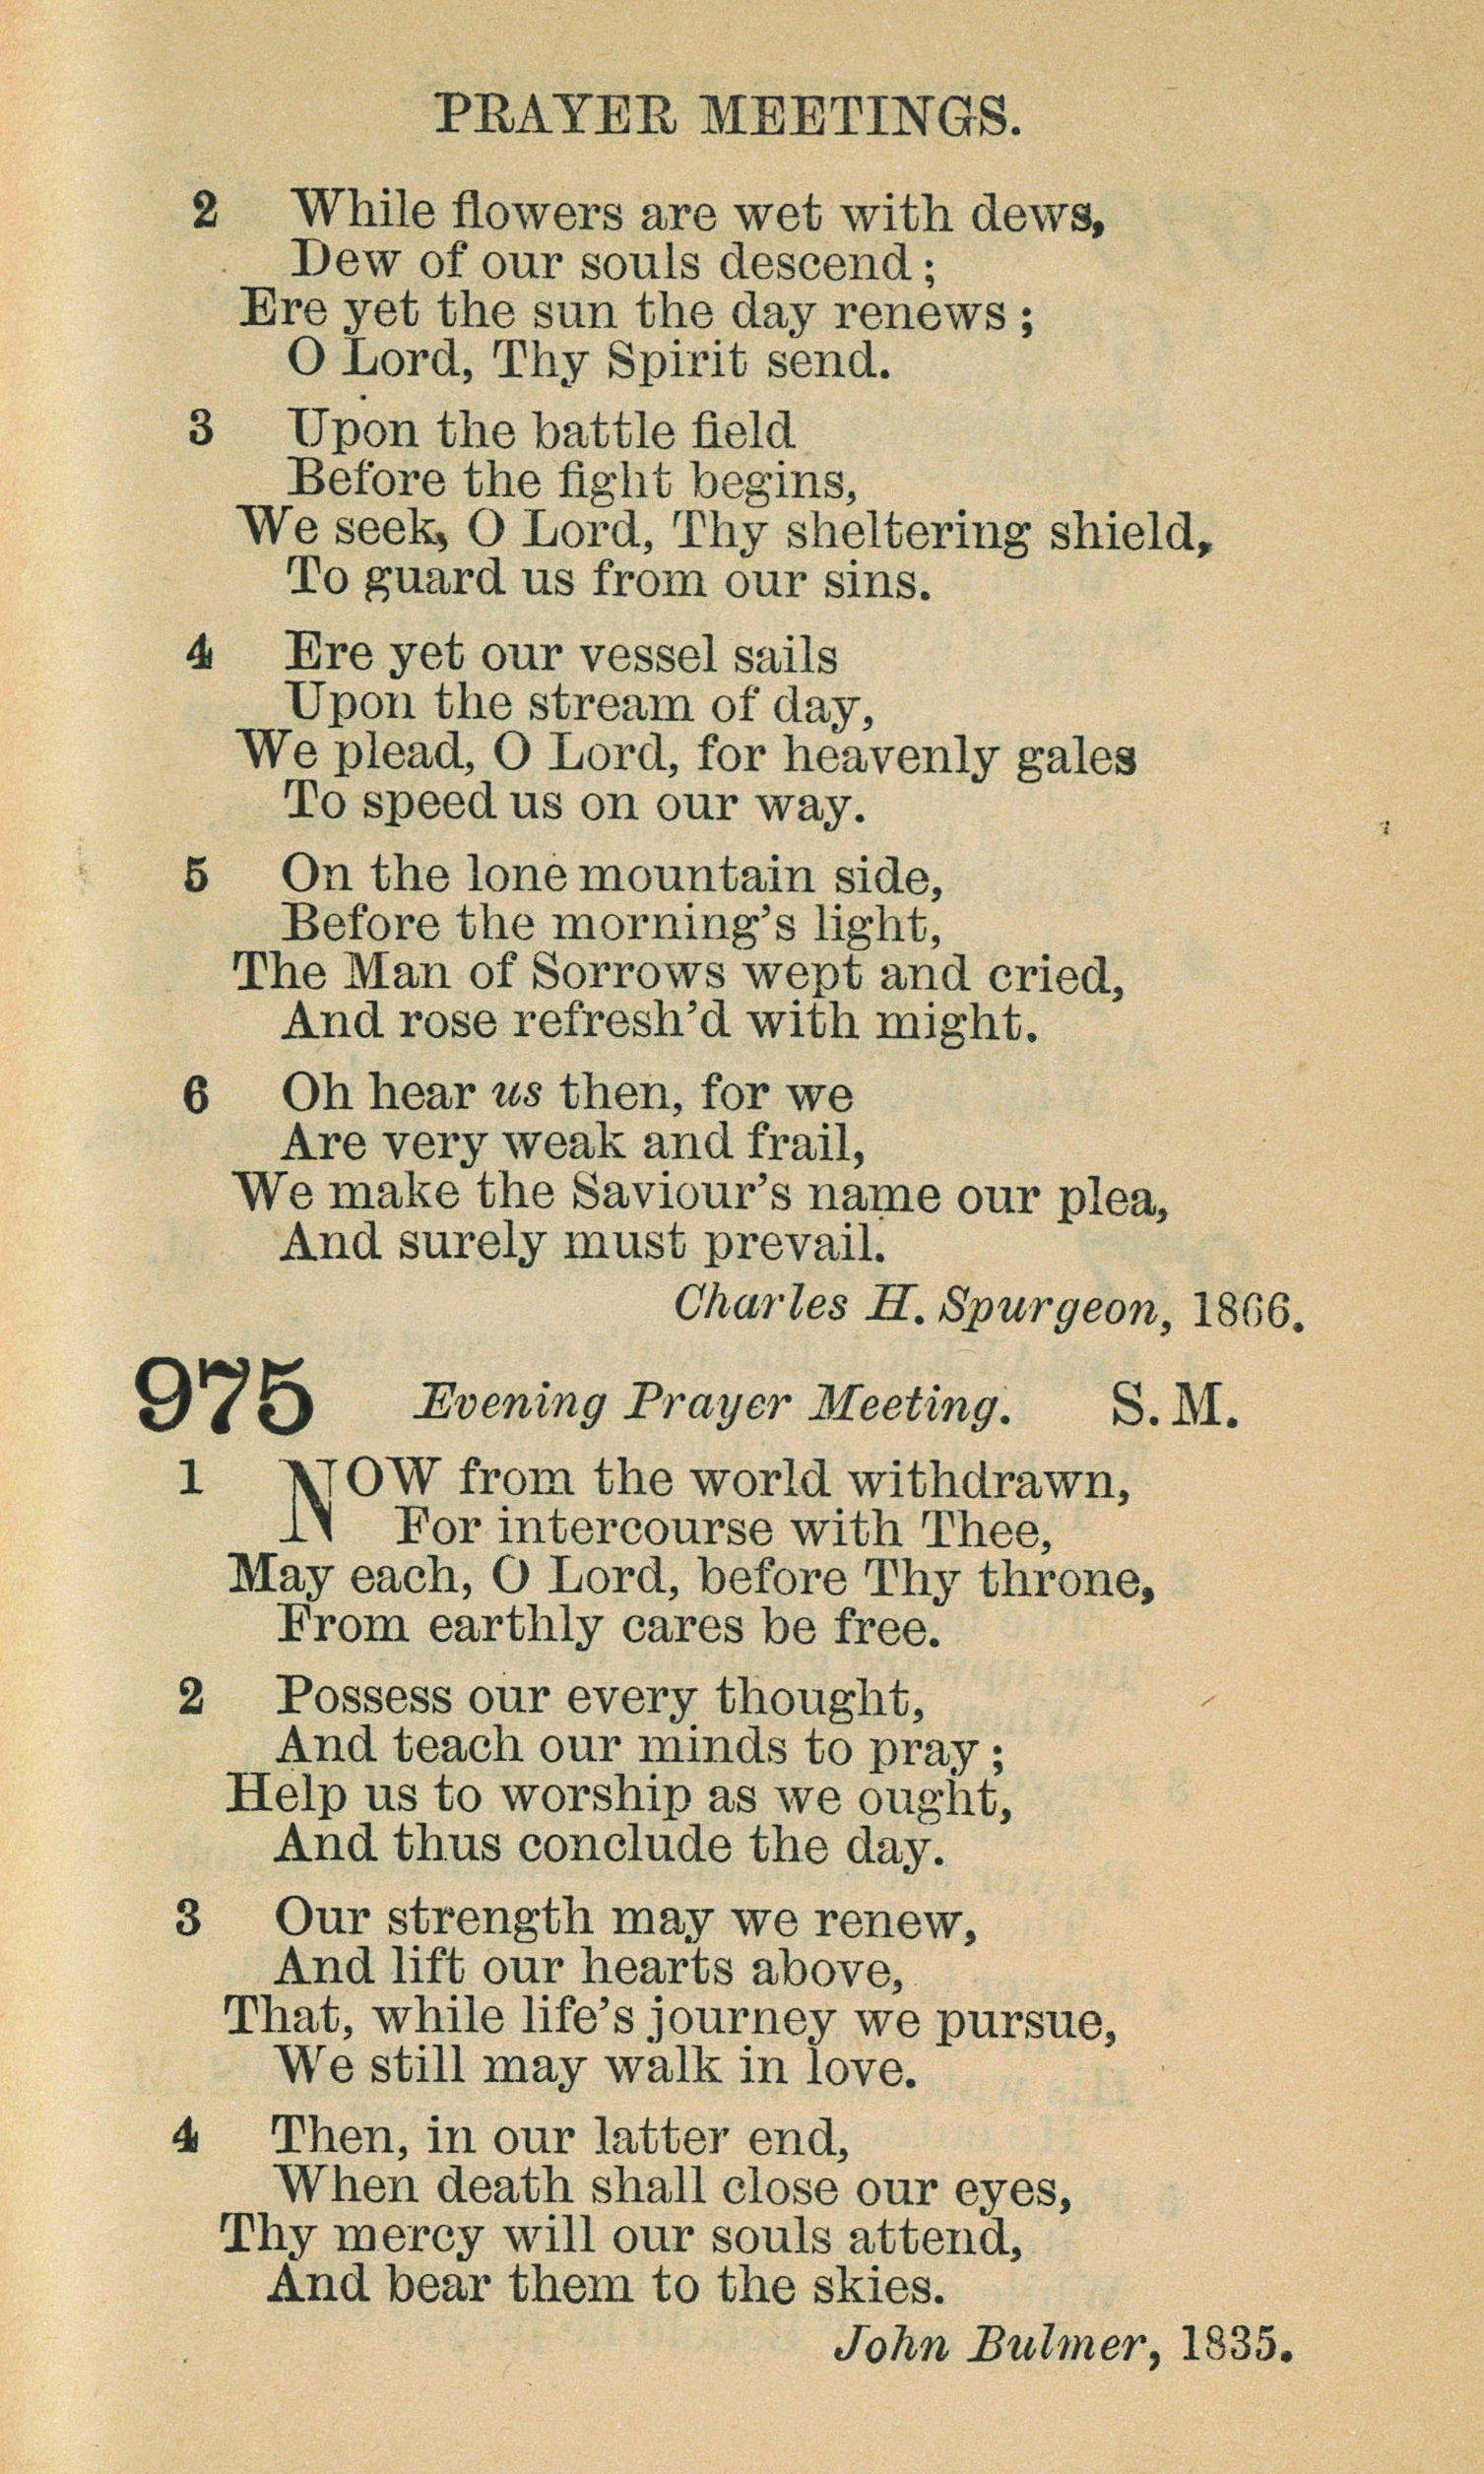 Fig. 1.   Our Own Hymn-Book  (London: Passmore & Alabaster, 1866).